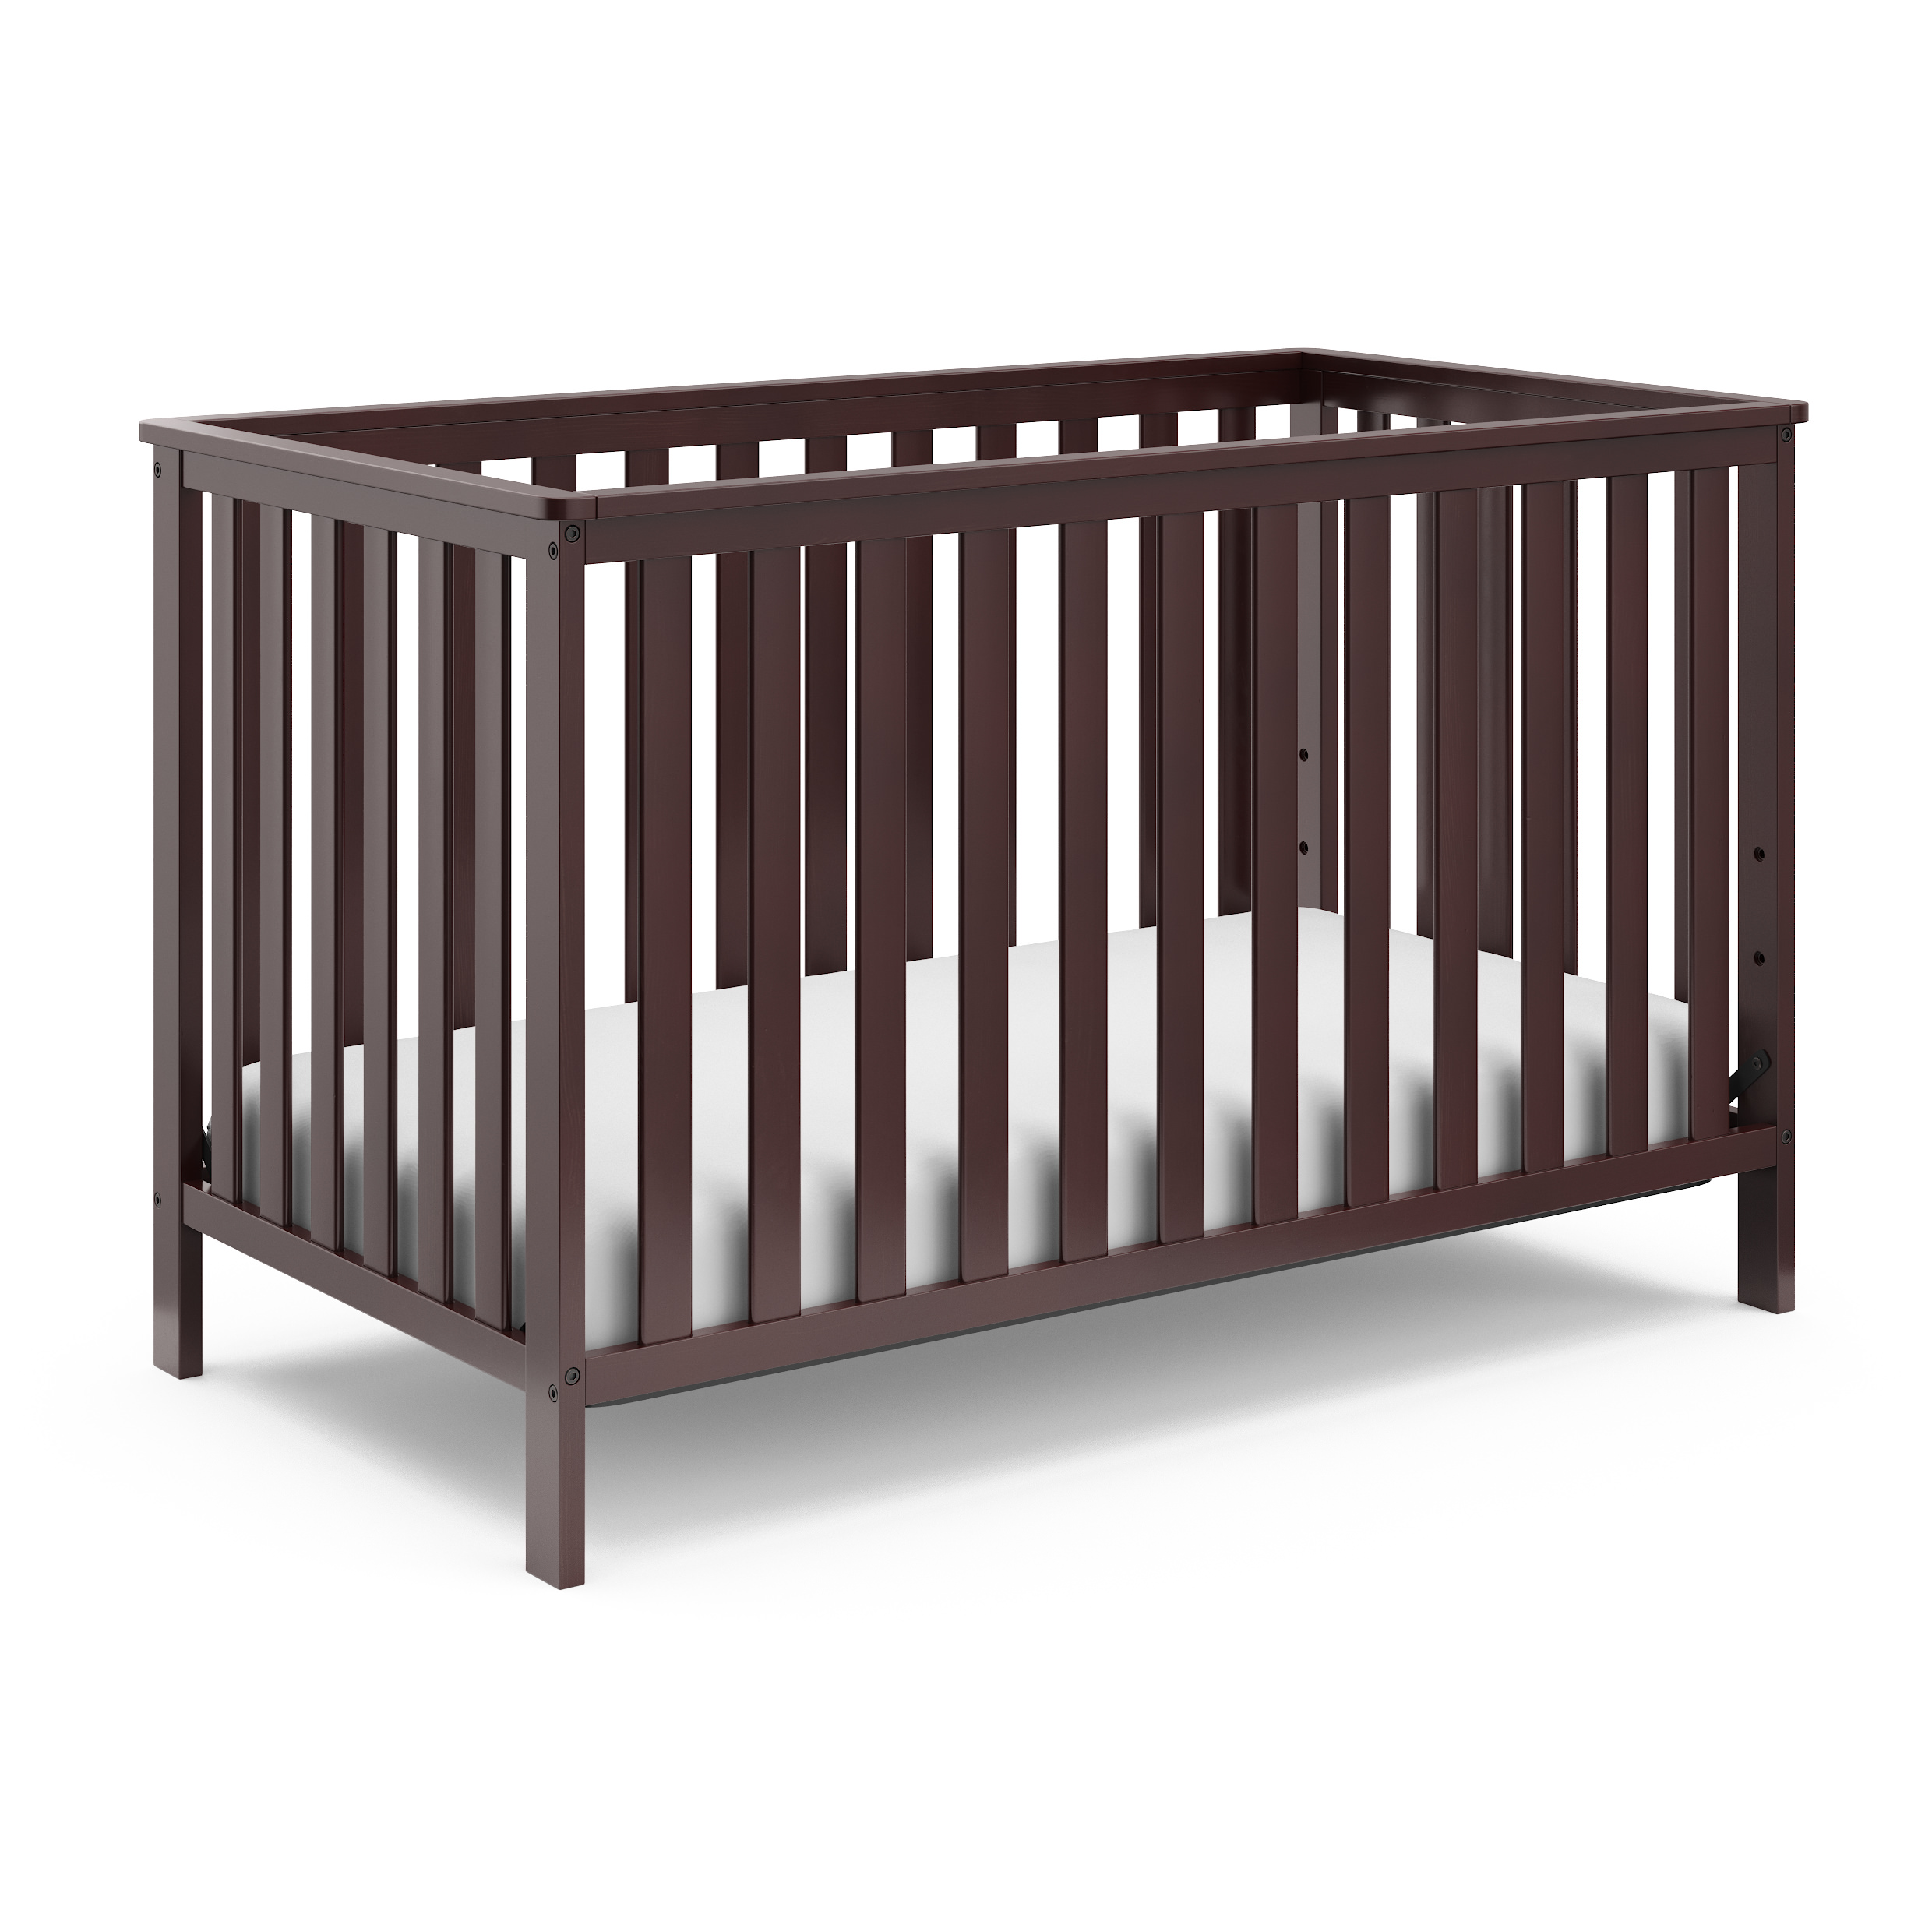 Storkcraft Rosland 3 in 1 Convertible Crib Espresso